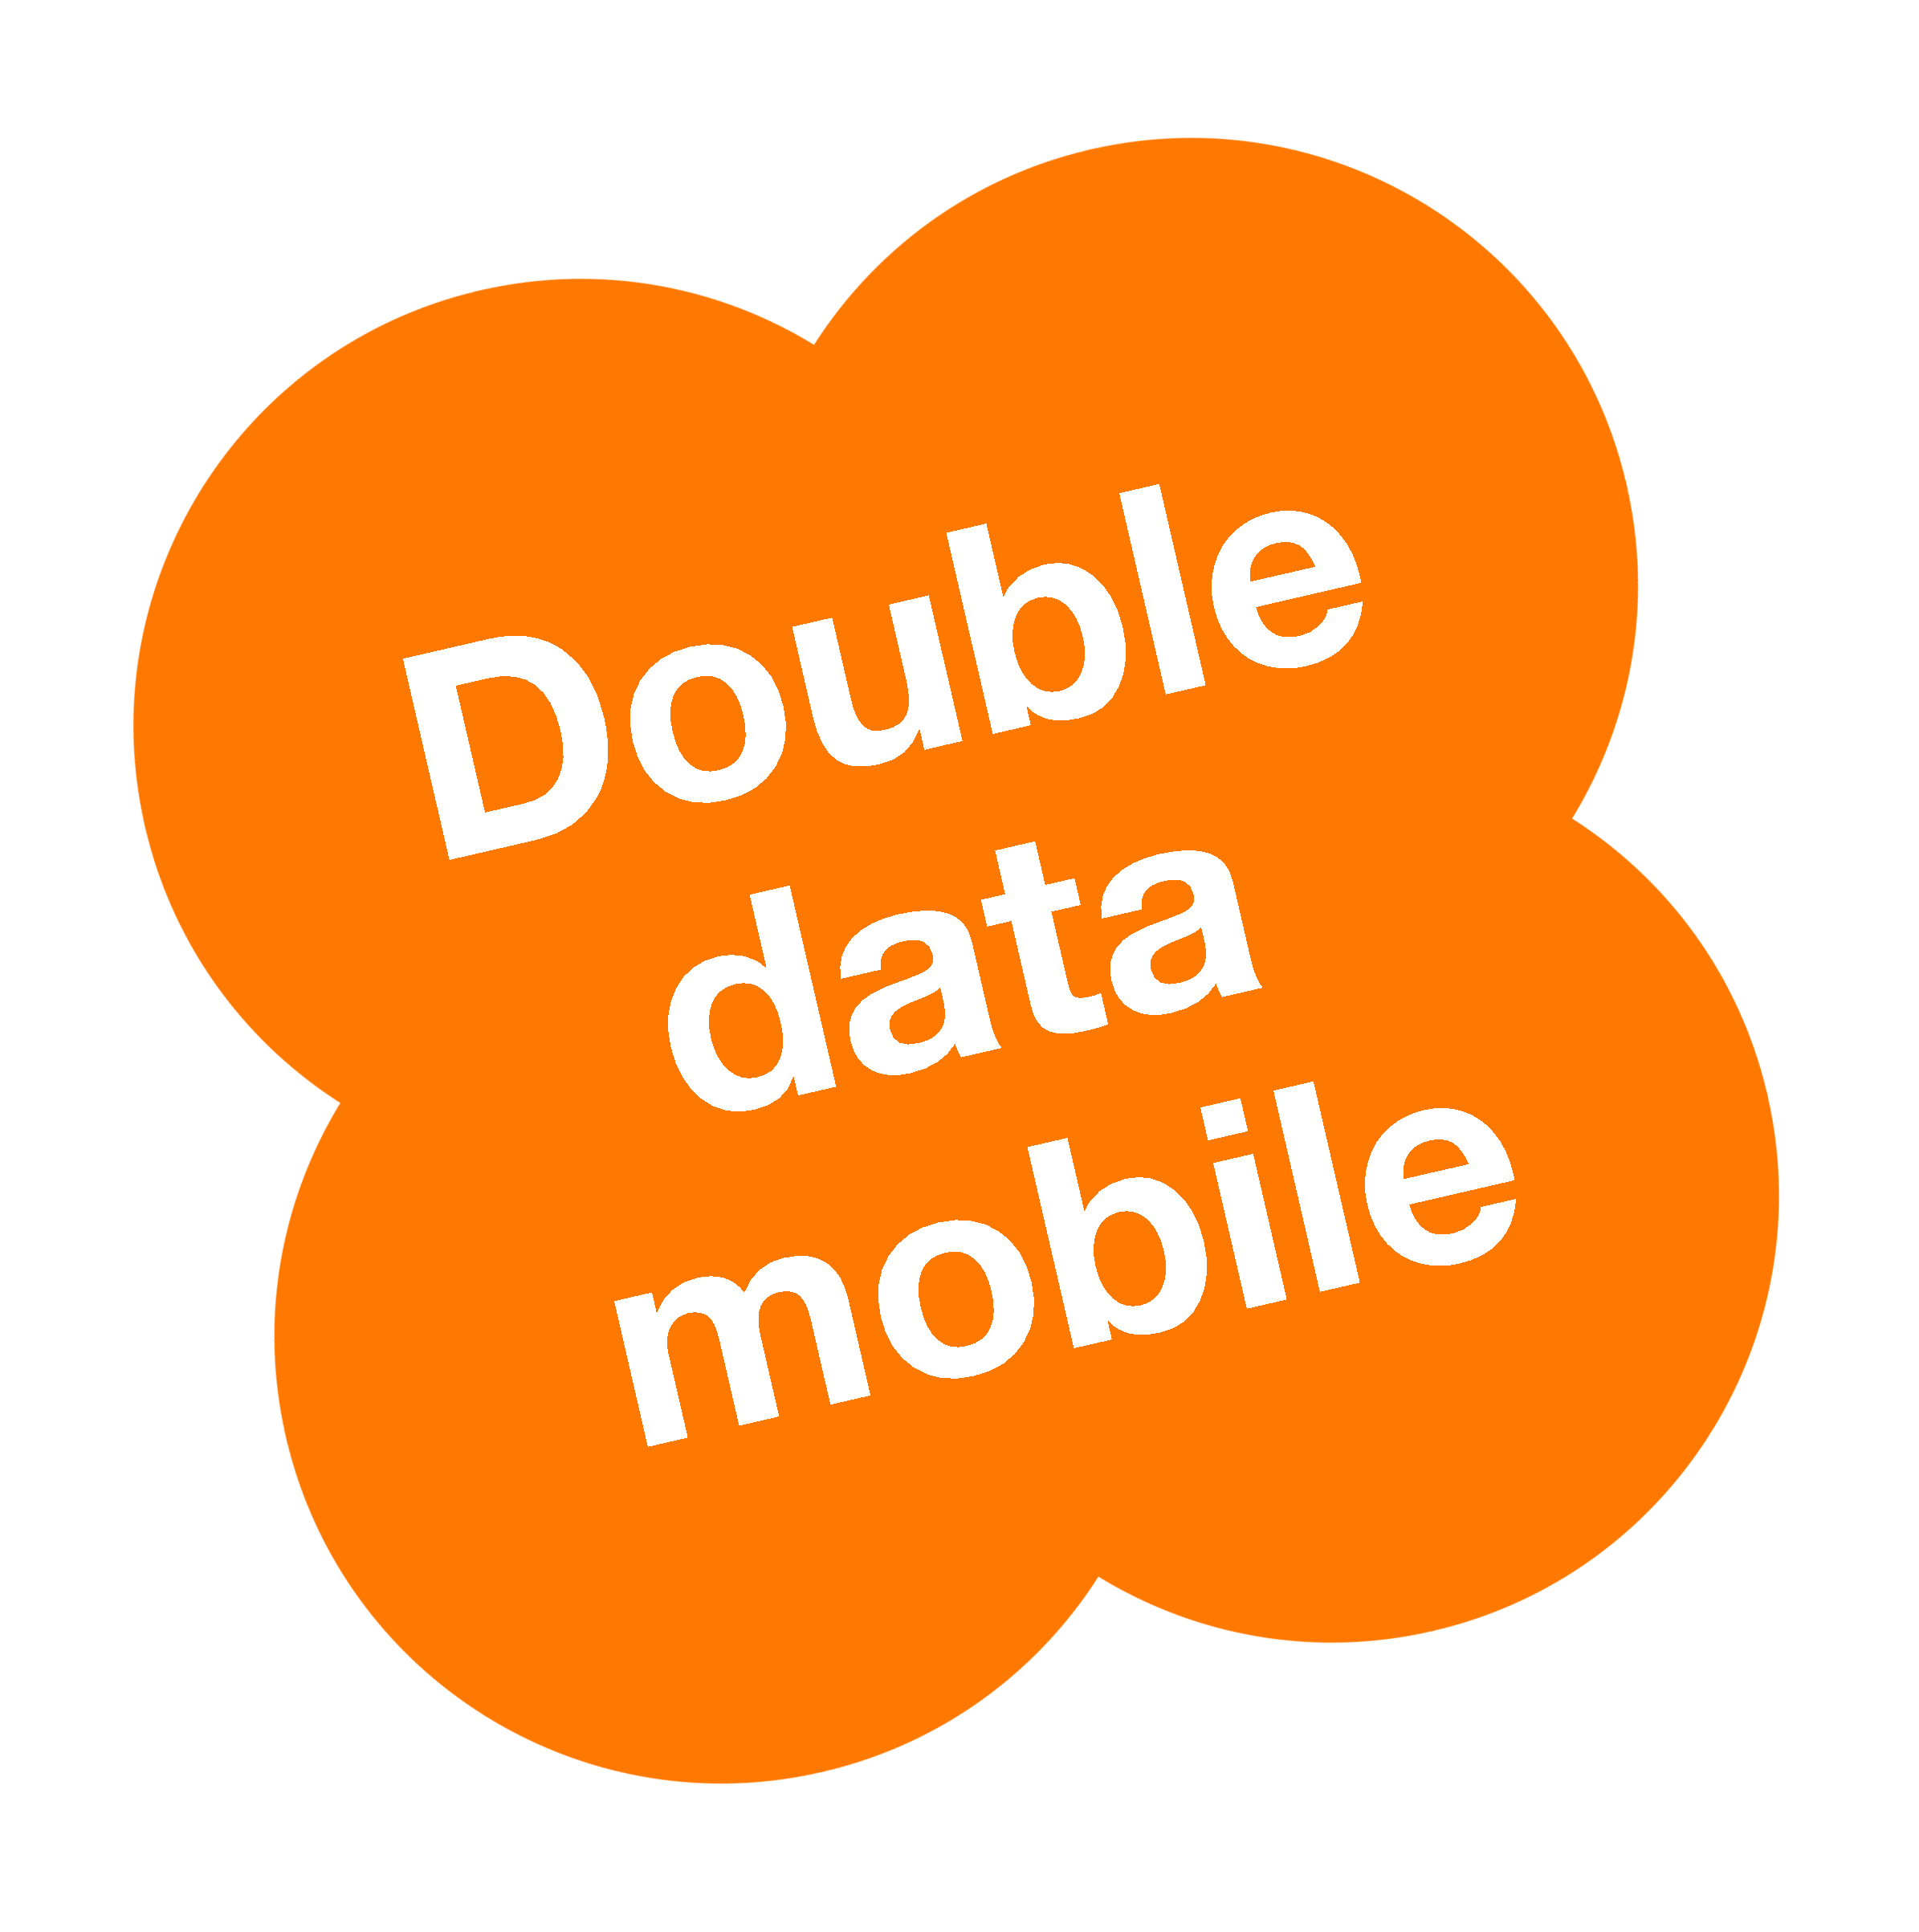 love double data